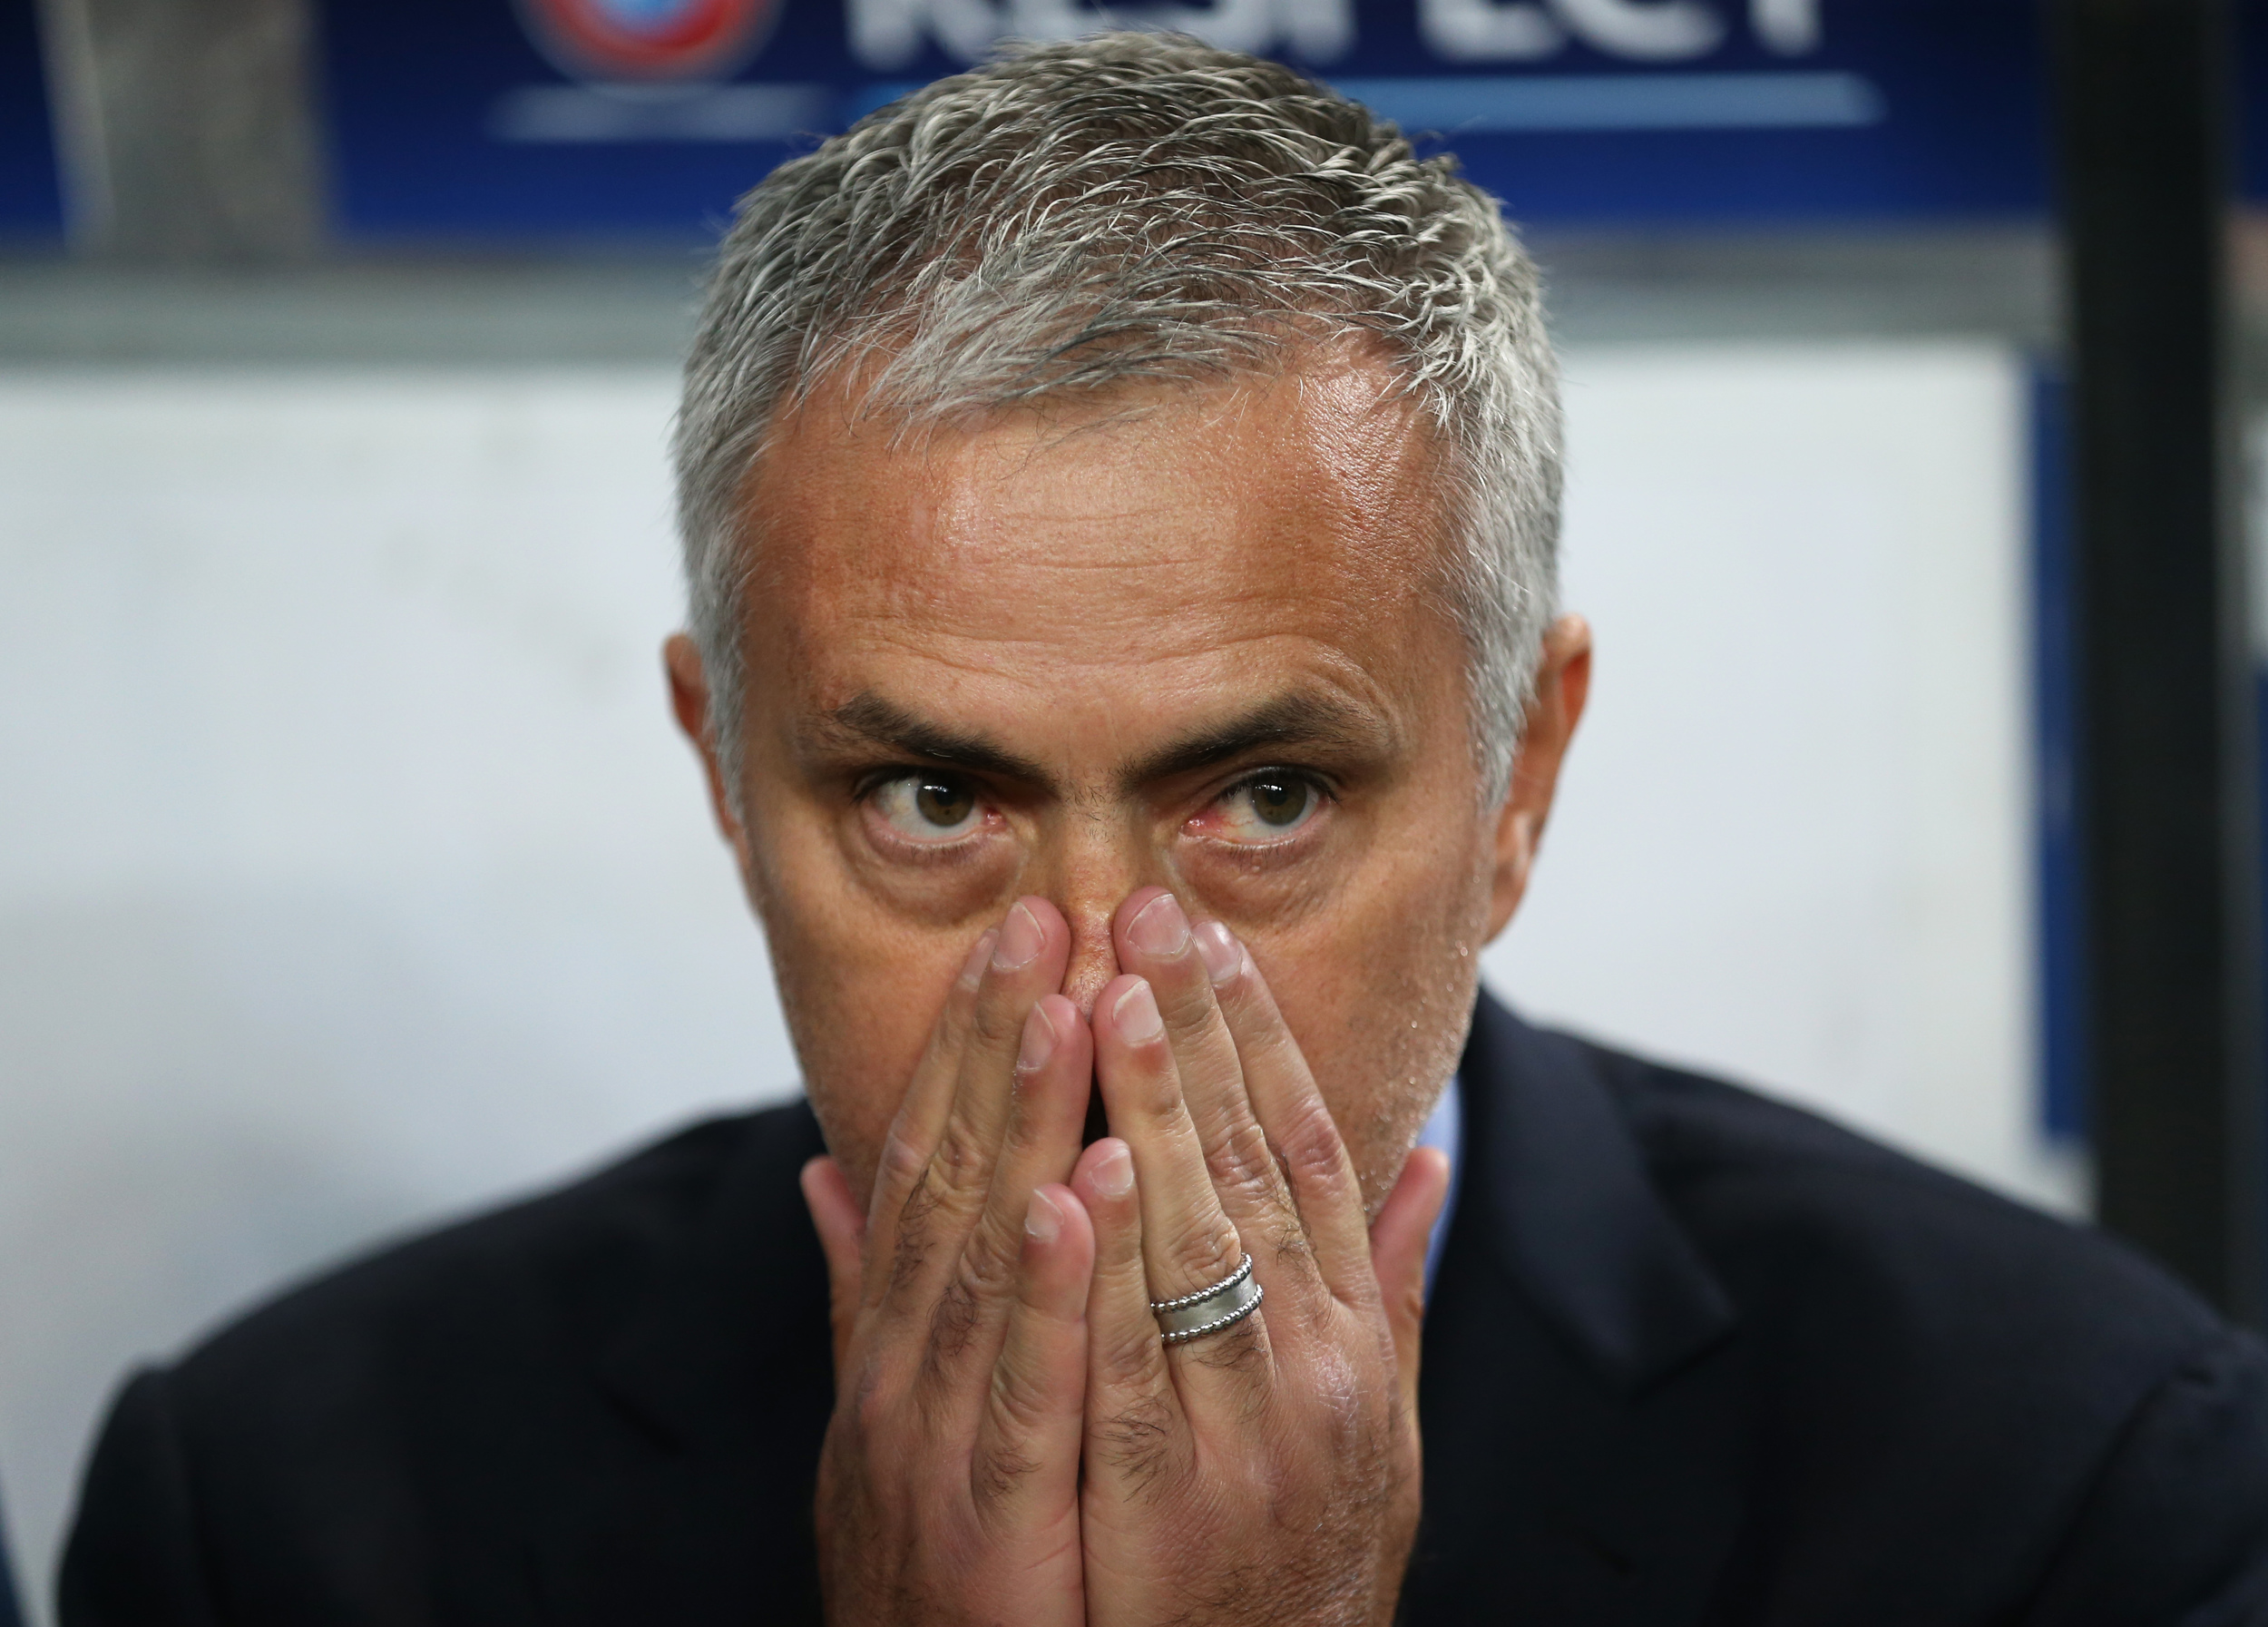 Chelsea Football Club's manager, Jose Mourinho looks dejected as his side struggle in the Champions League against his old club, Porto. Chelsea, the reigning English Premier League champions, have struggled domestically, languishing in 15th place as well as being knocked out of the Capital One Cup. His job is in jeopardy. Image supplied by Action Images / Matthew Childs